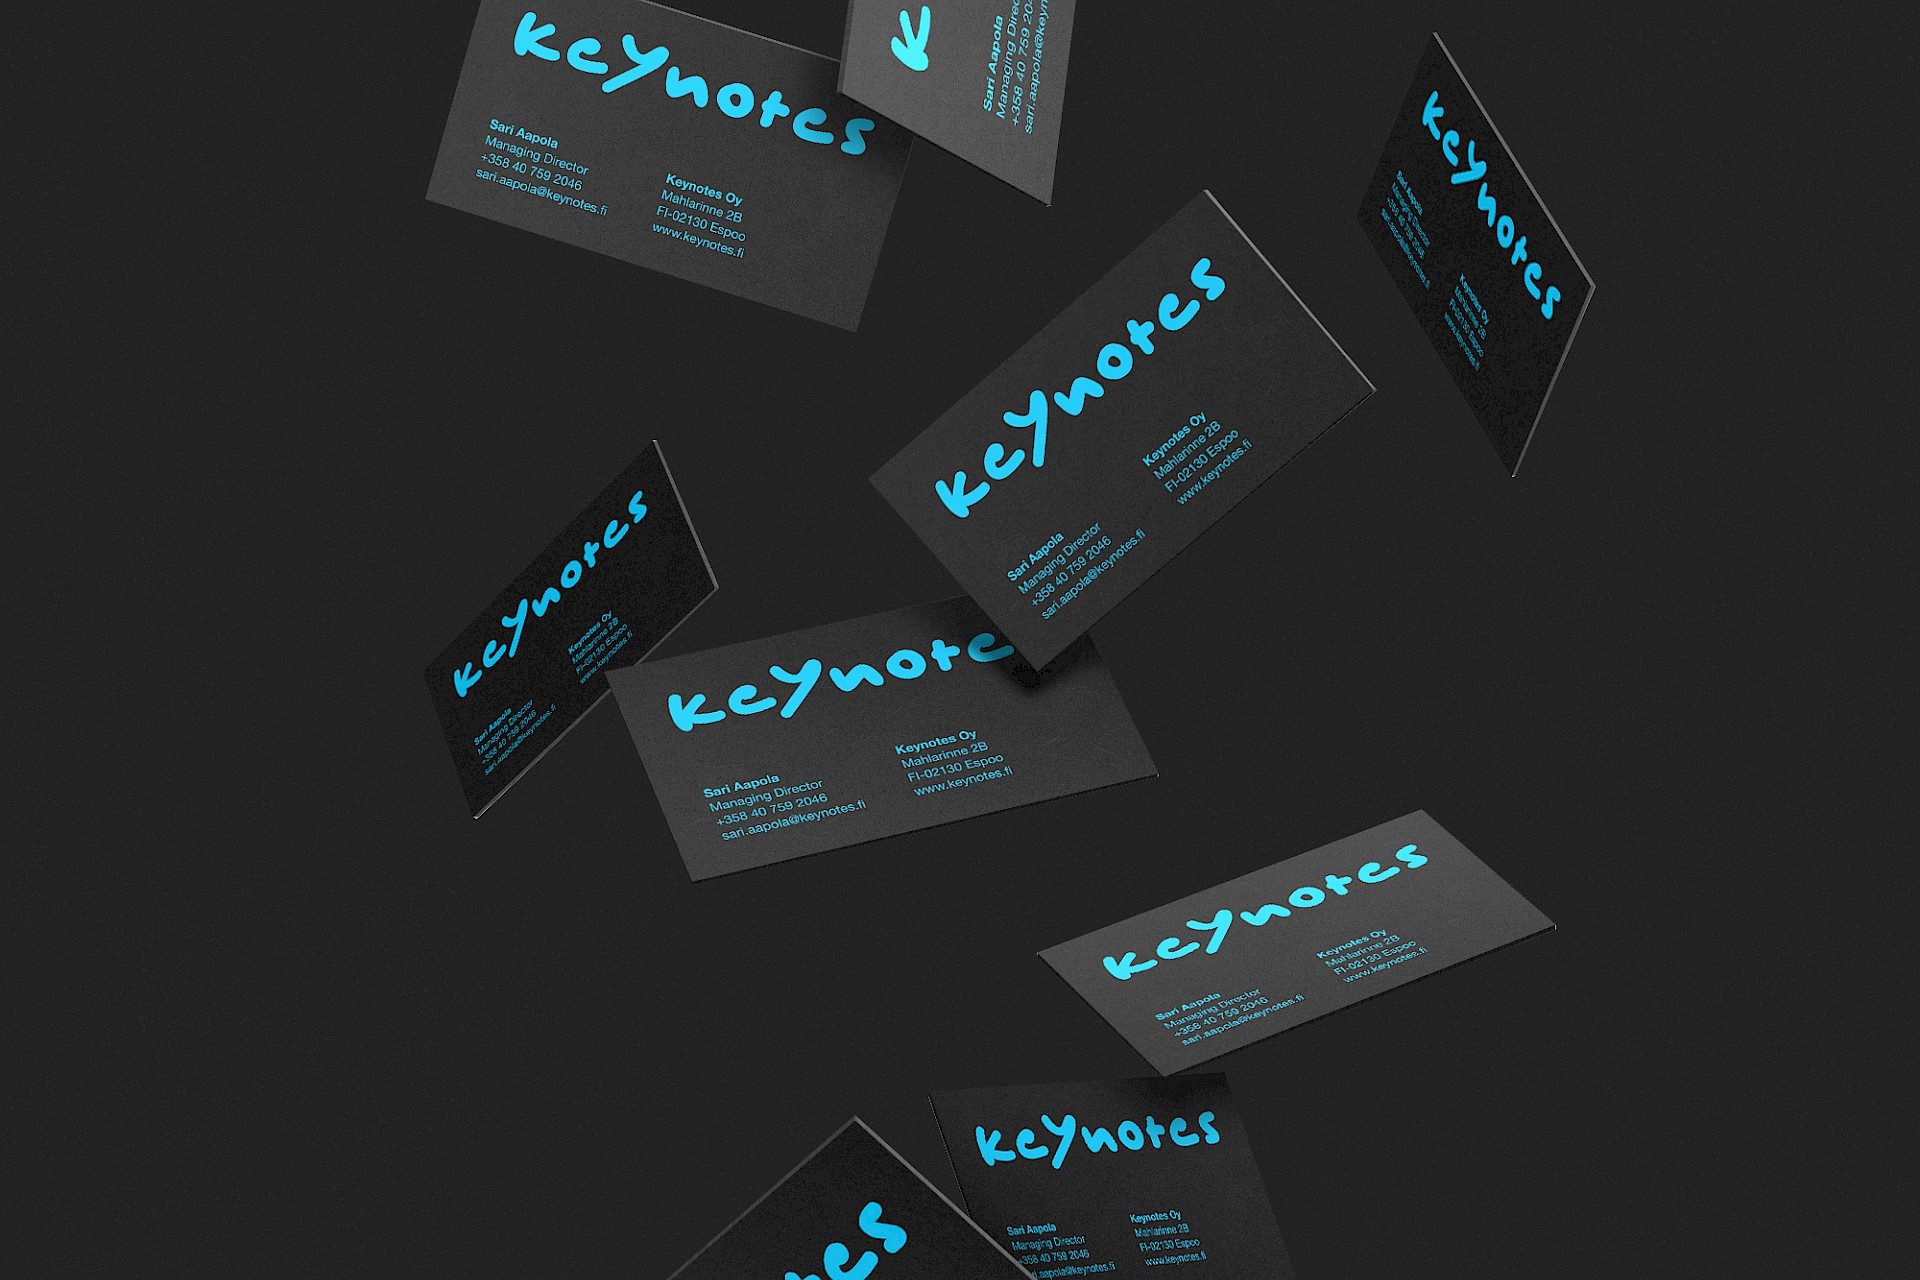 Keynotes: Business card